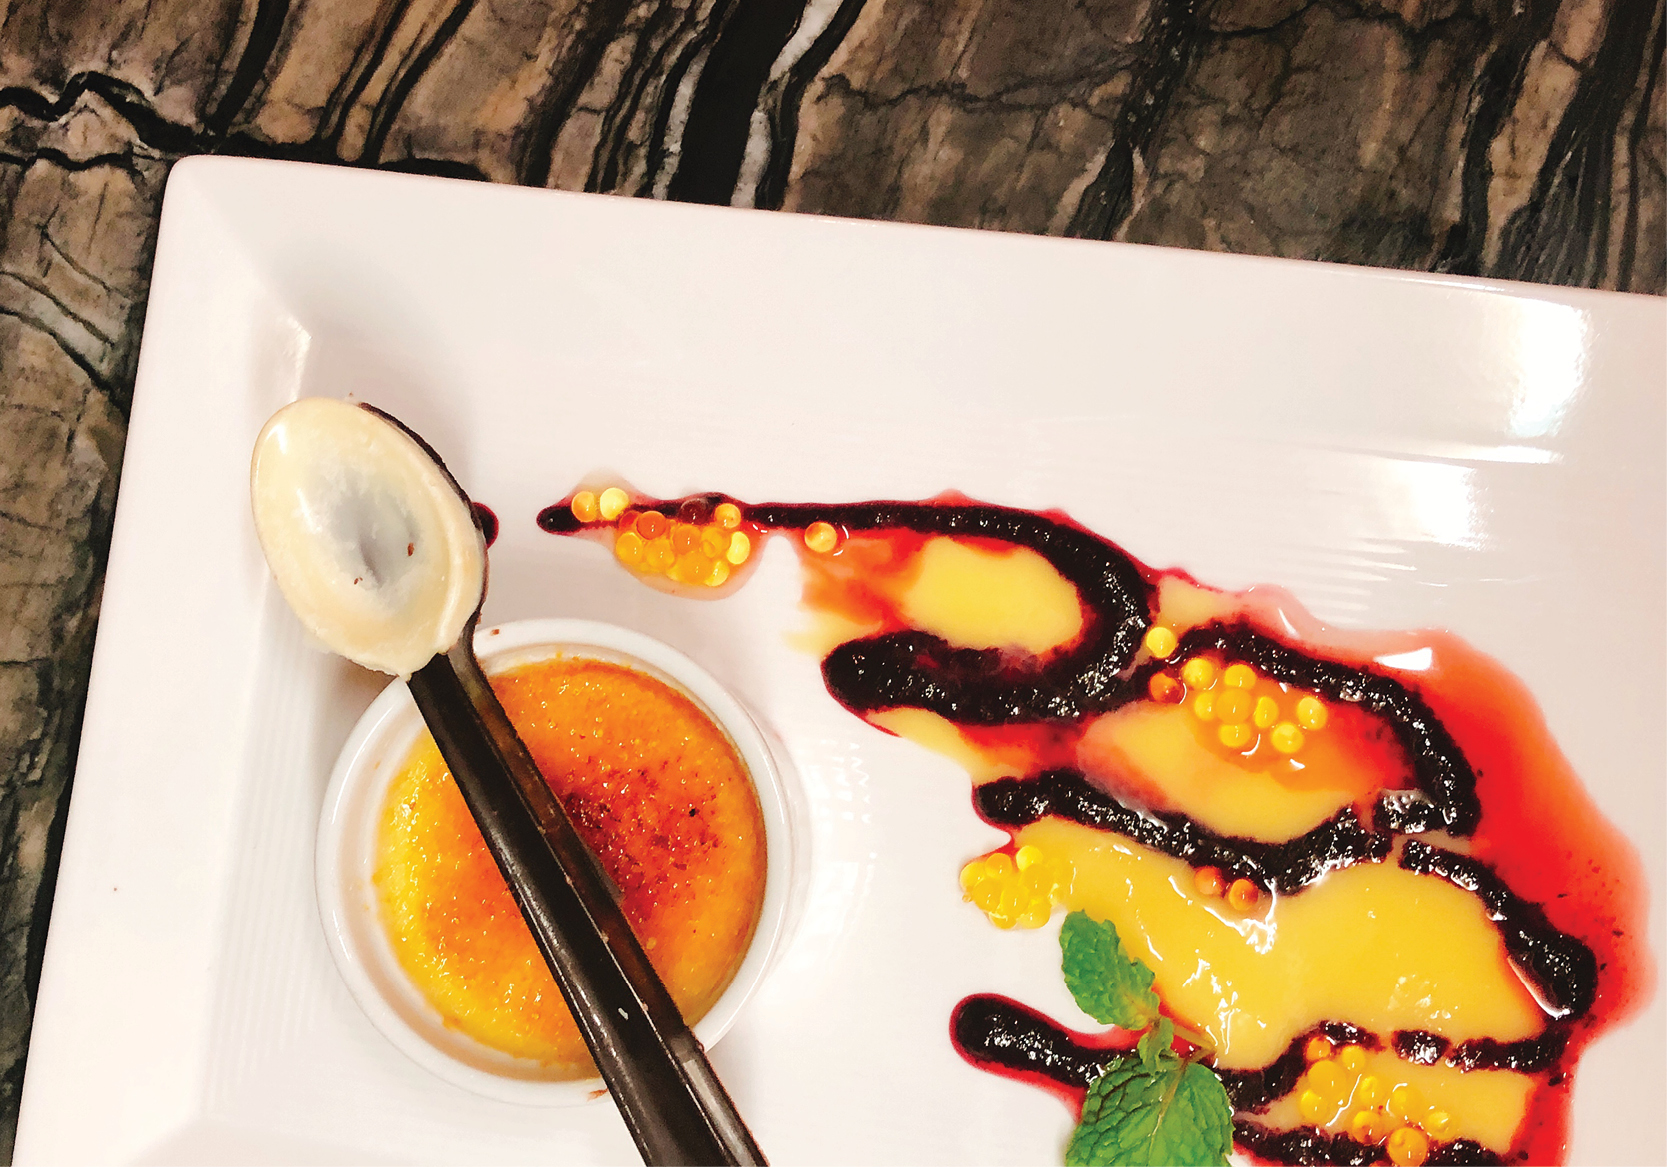 Crème Brûlée with Dark and White Chocolate Scooping Spoon